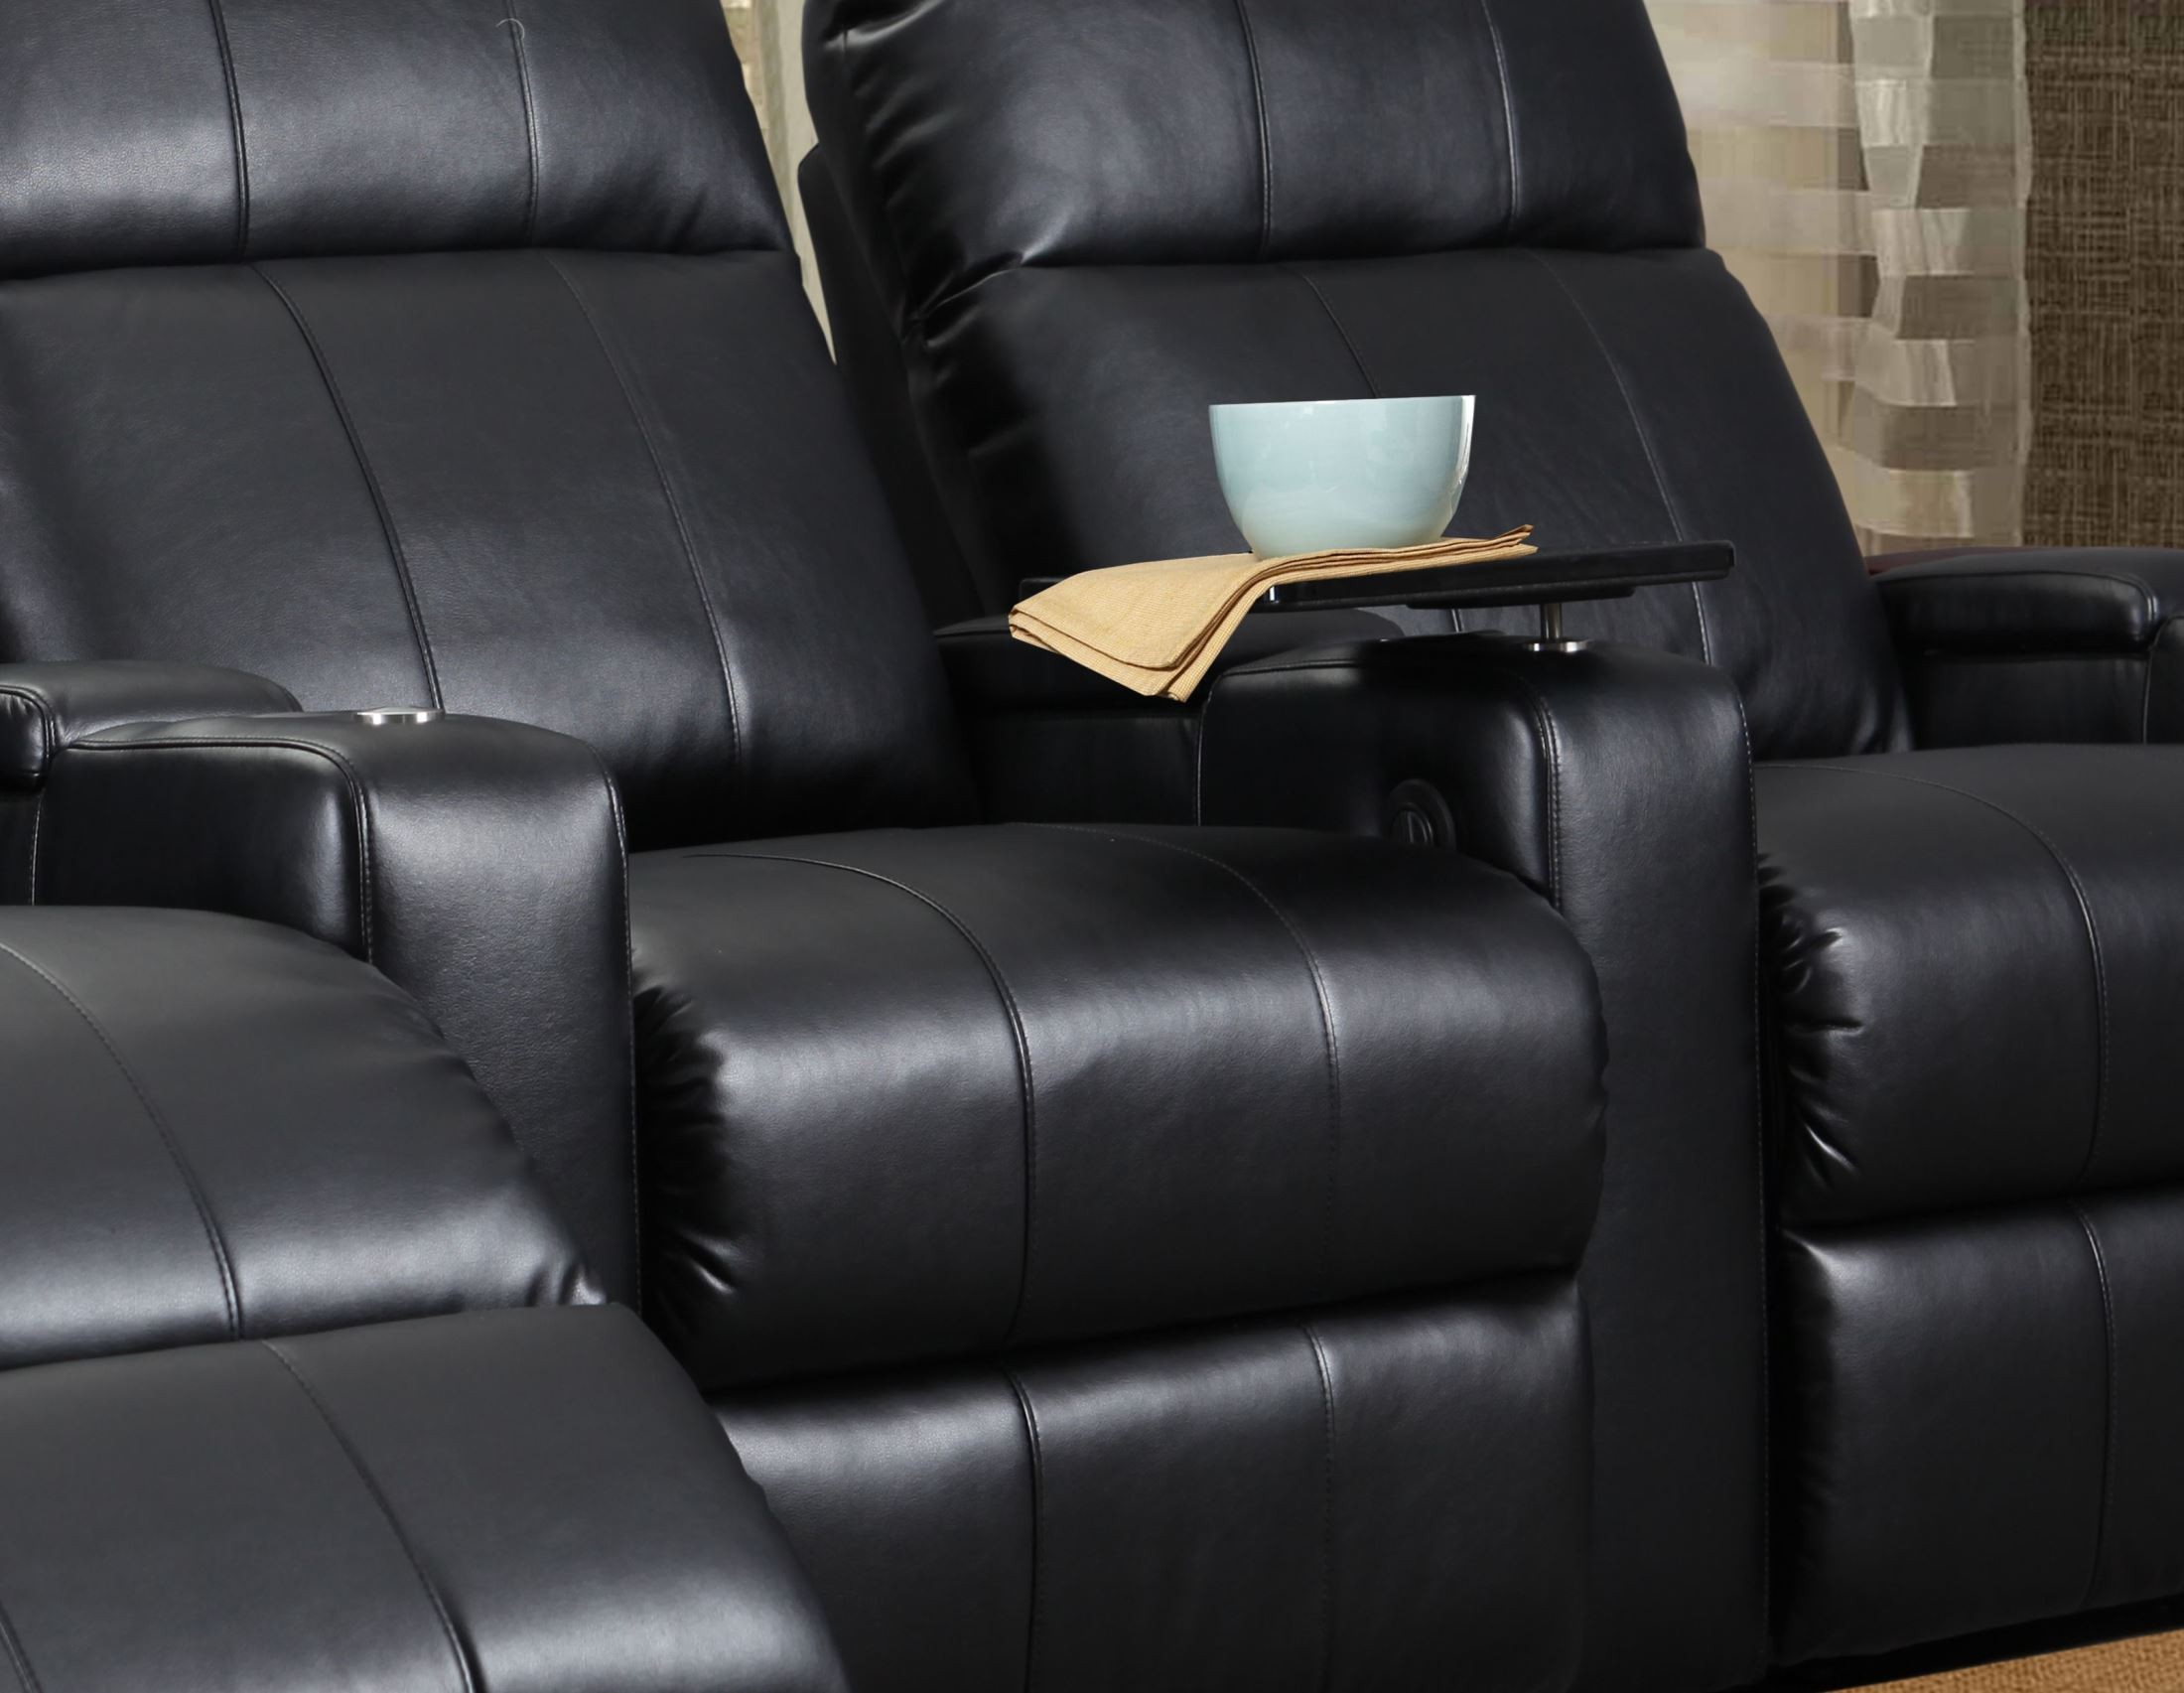 1717110 & Plaza Black Bonded Leather 2 Arm Power Recliner from RowOne ... islam-shia.org